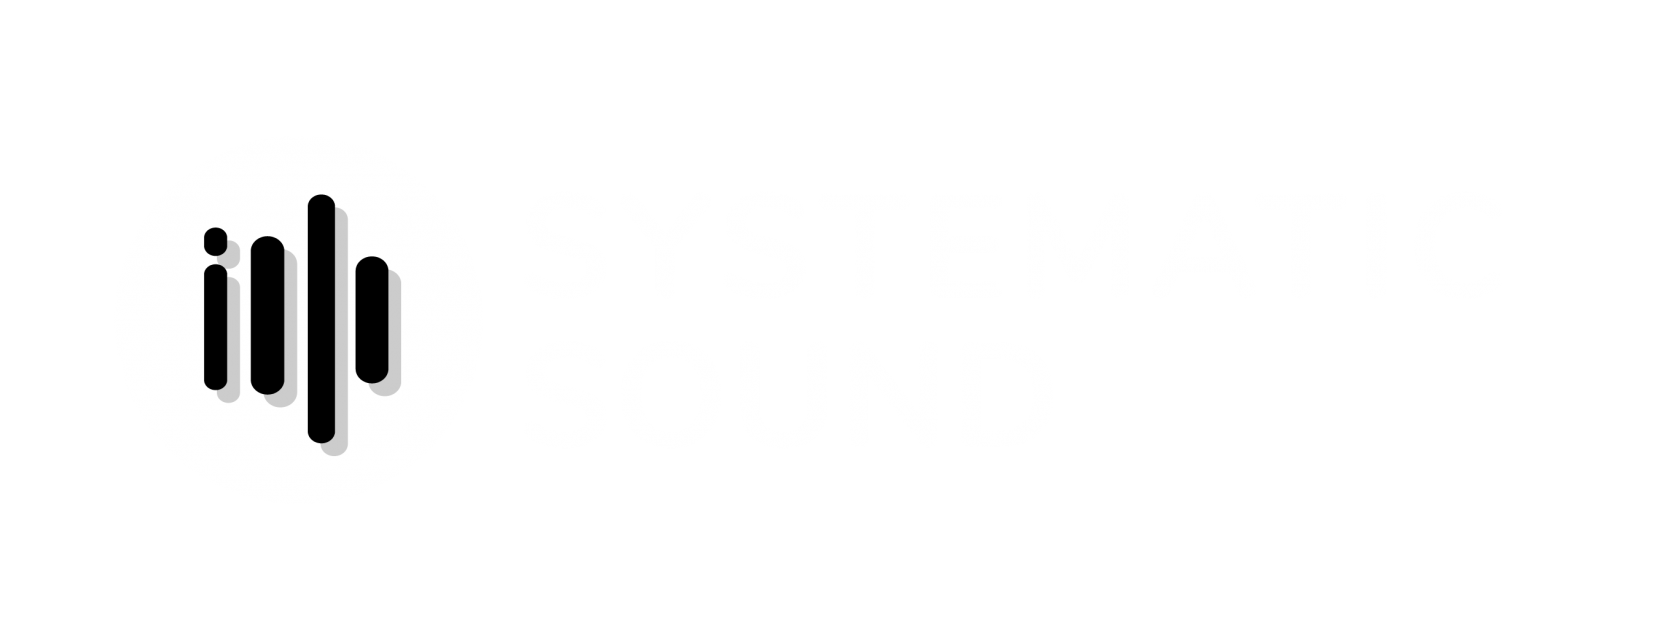 systematic-sound